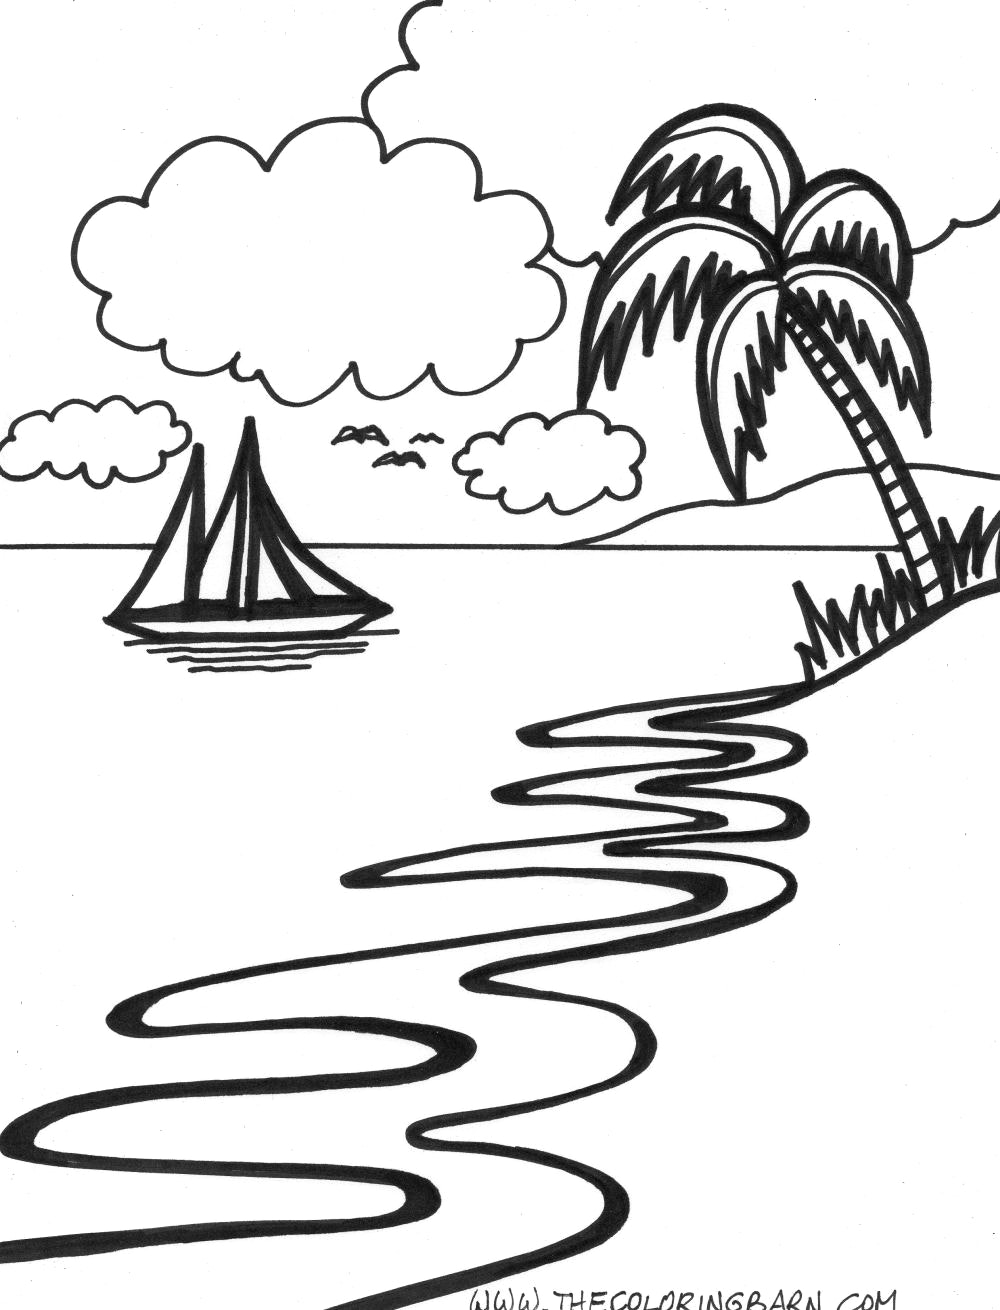 sunset coloring pages sunset coloring pages to download and print for free sunset pages coloring 1 1